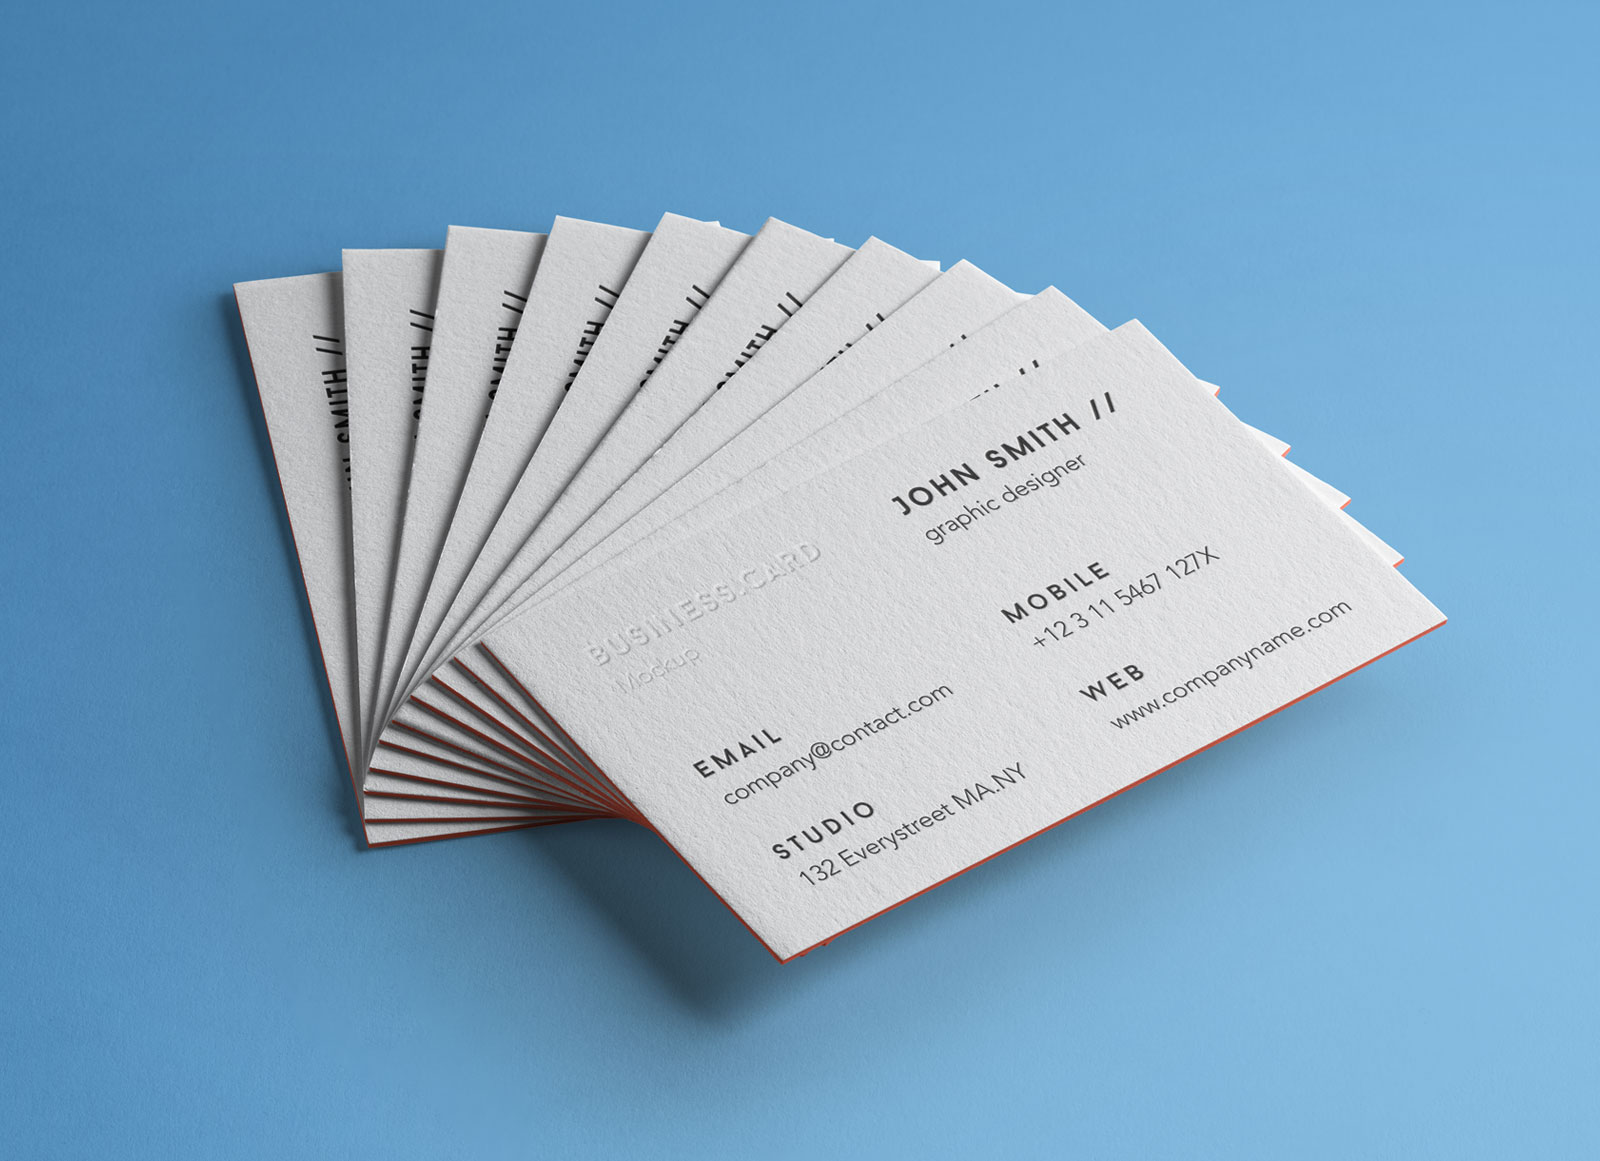 Free-Letterpressed-Business-Card-Mockup-with-Colored-Edges